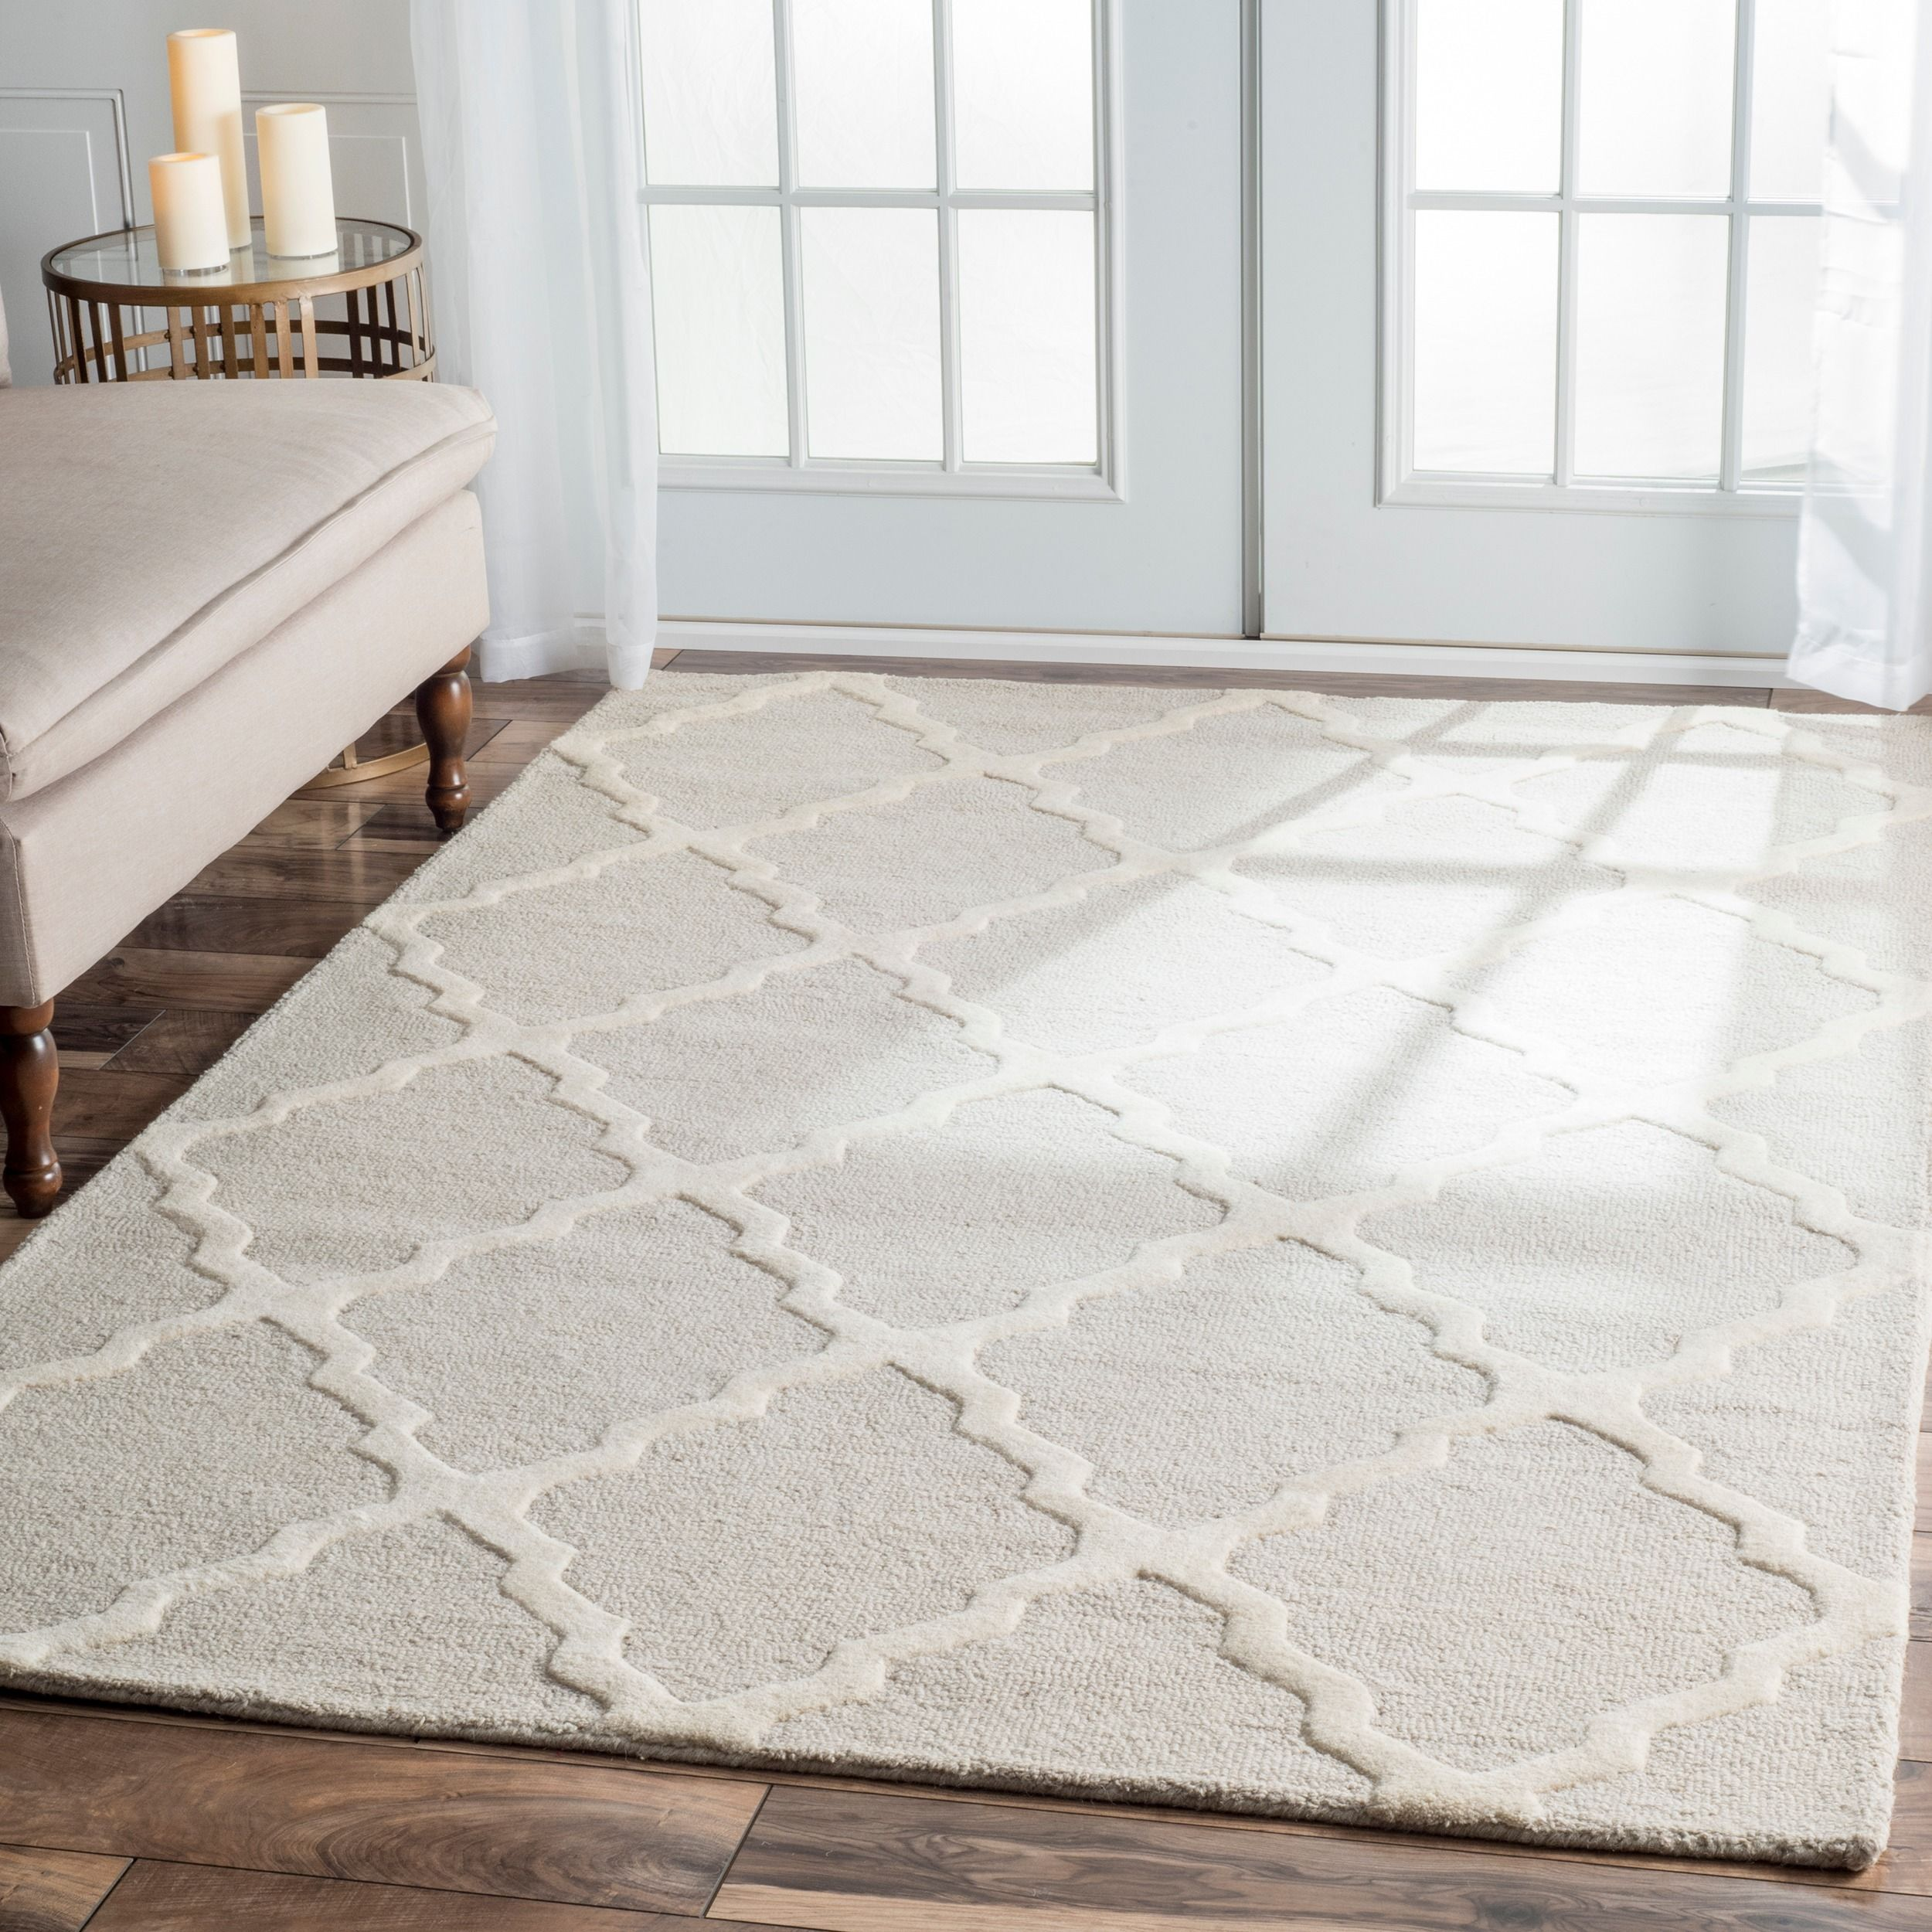 nuloom free new wool garden home zealand overstock handmade shipping white x rug today cable braided product